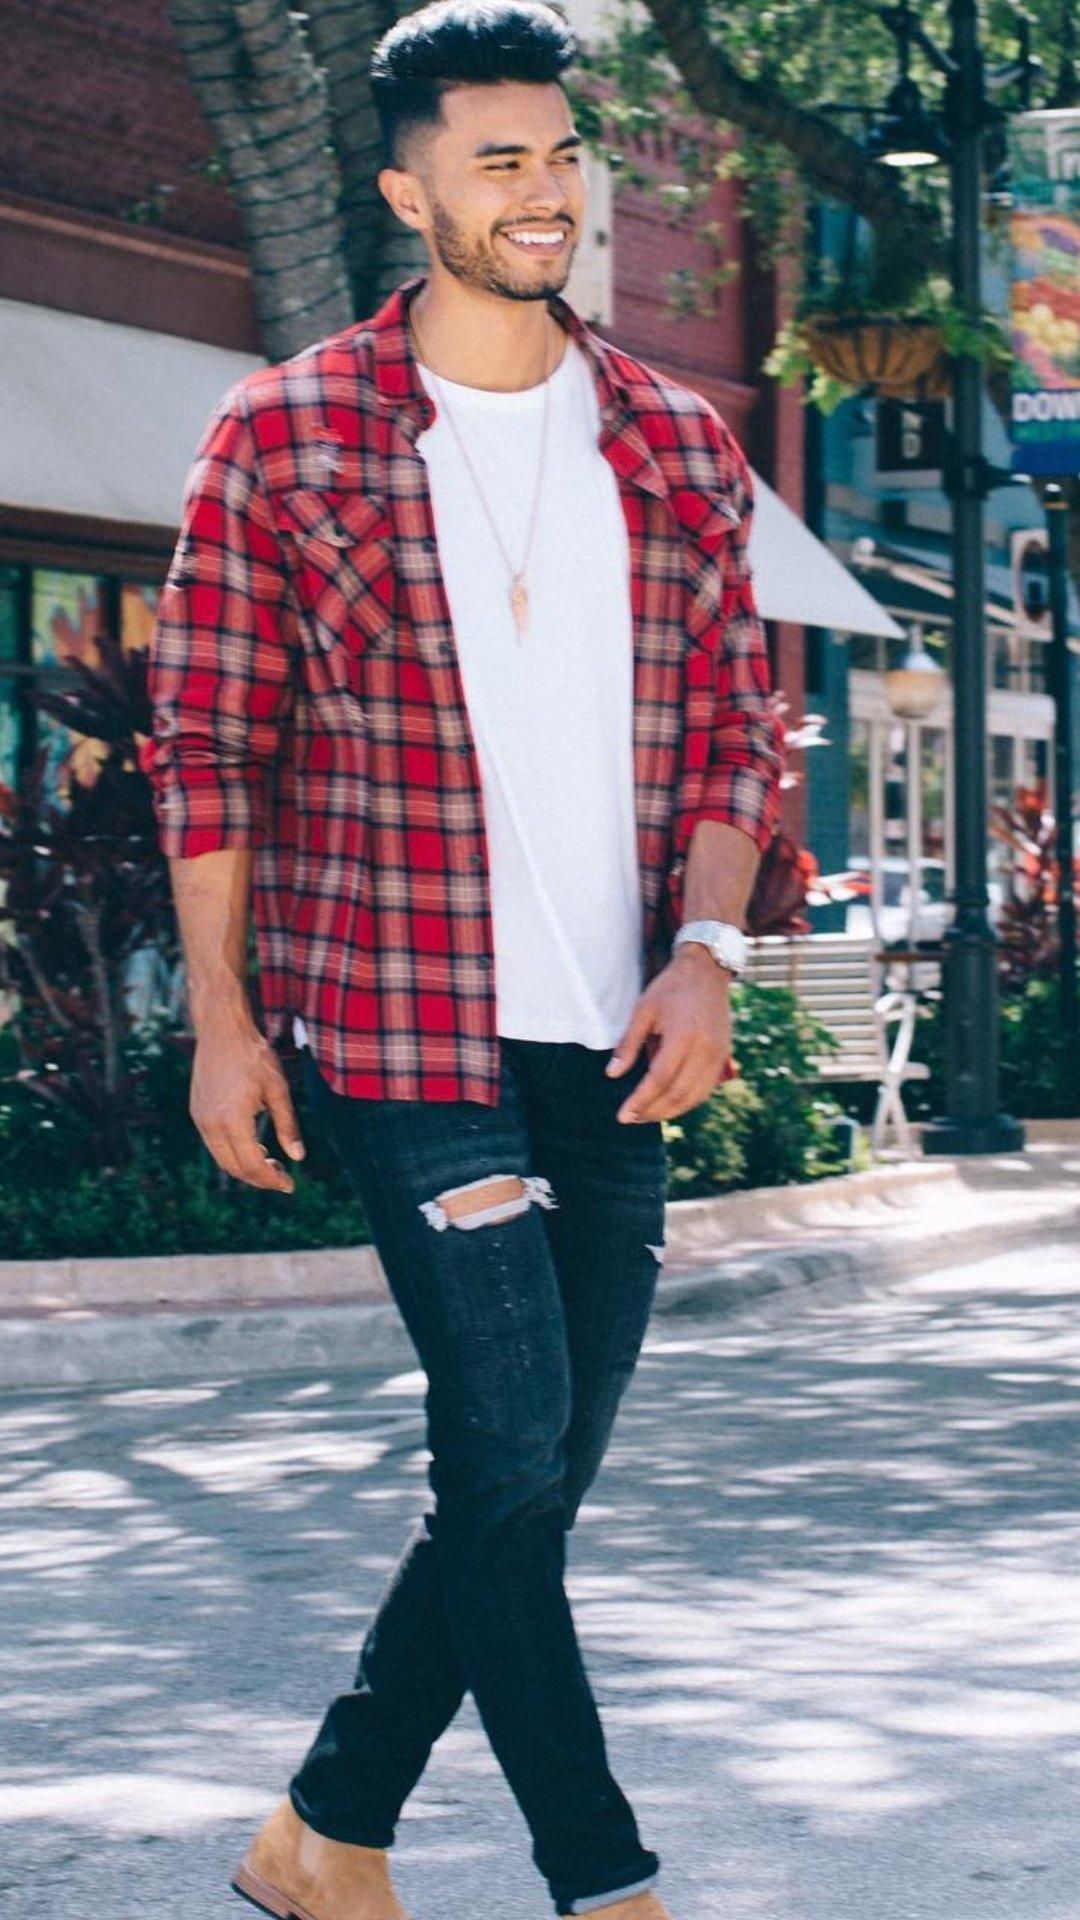 5_OUTFITS_TO_LOOKING_GREAT_IN_SHIRTS_8 Cute Outfits for Skinny Guys - Styling Tips With New Trends